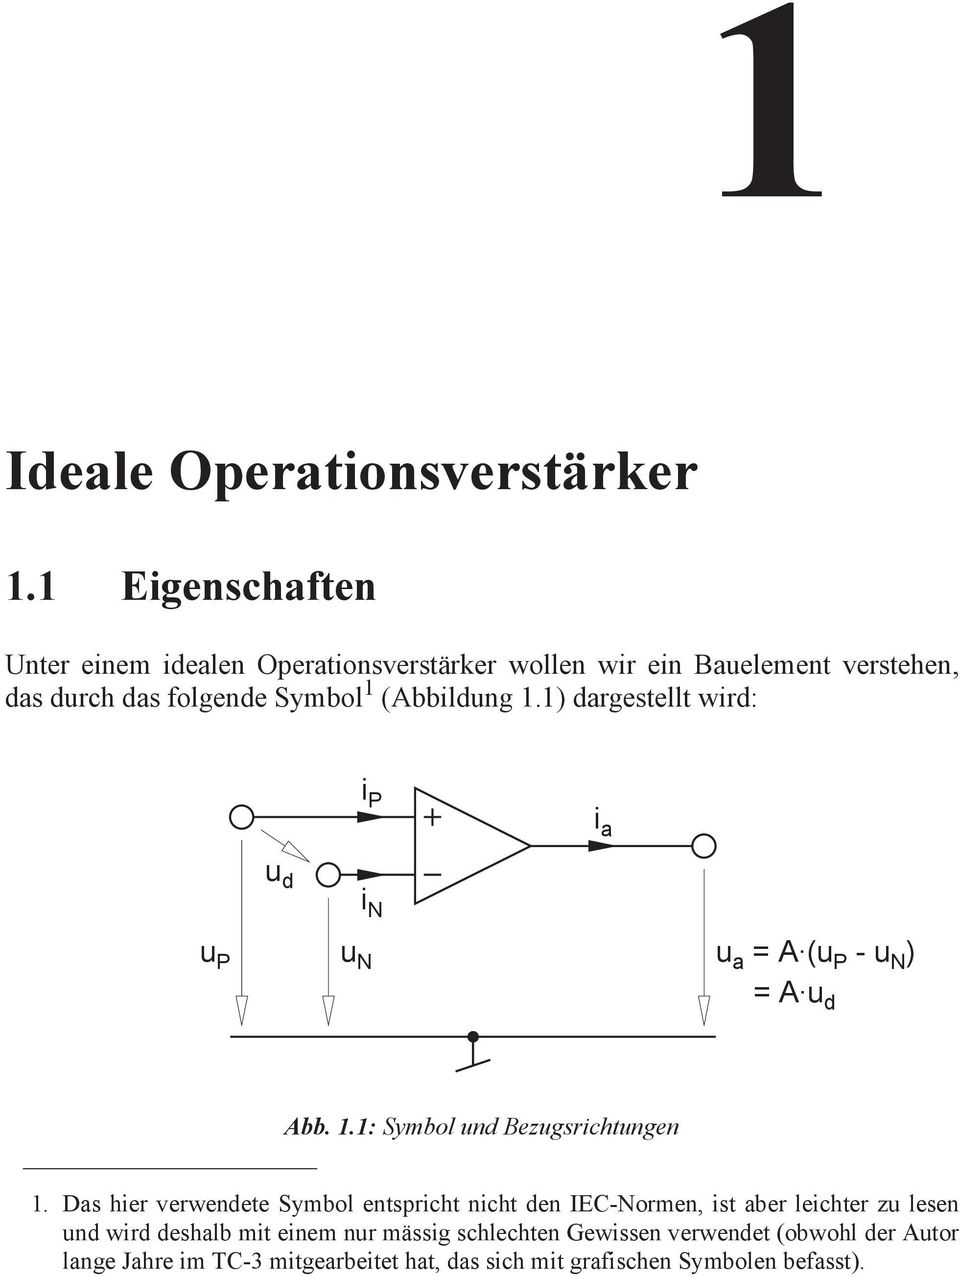 Ideale Operationsverstärker - PDF